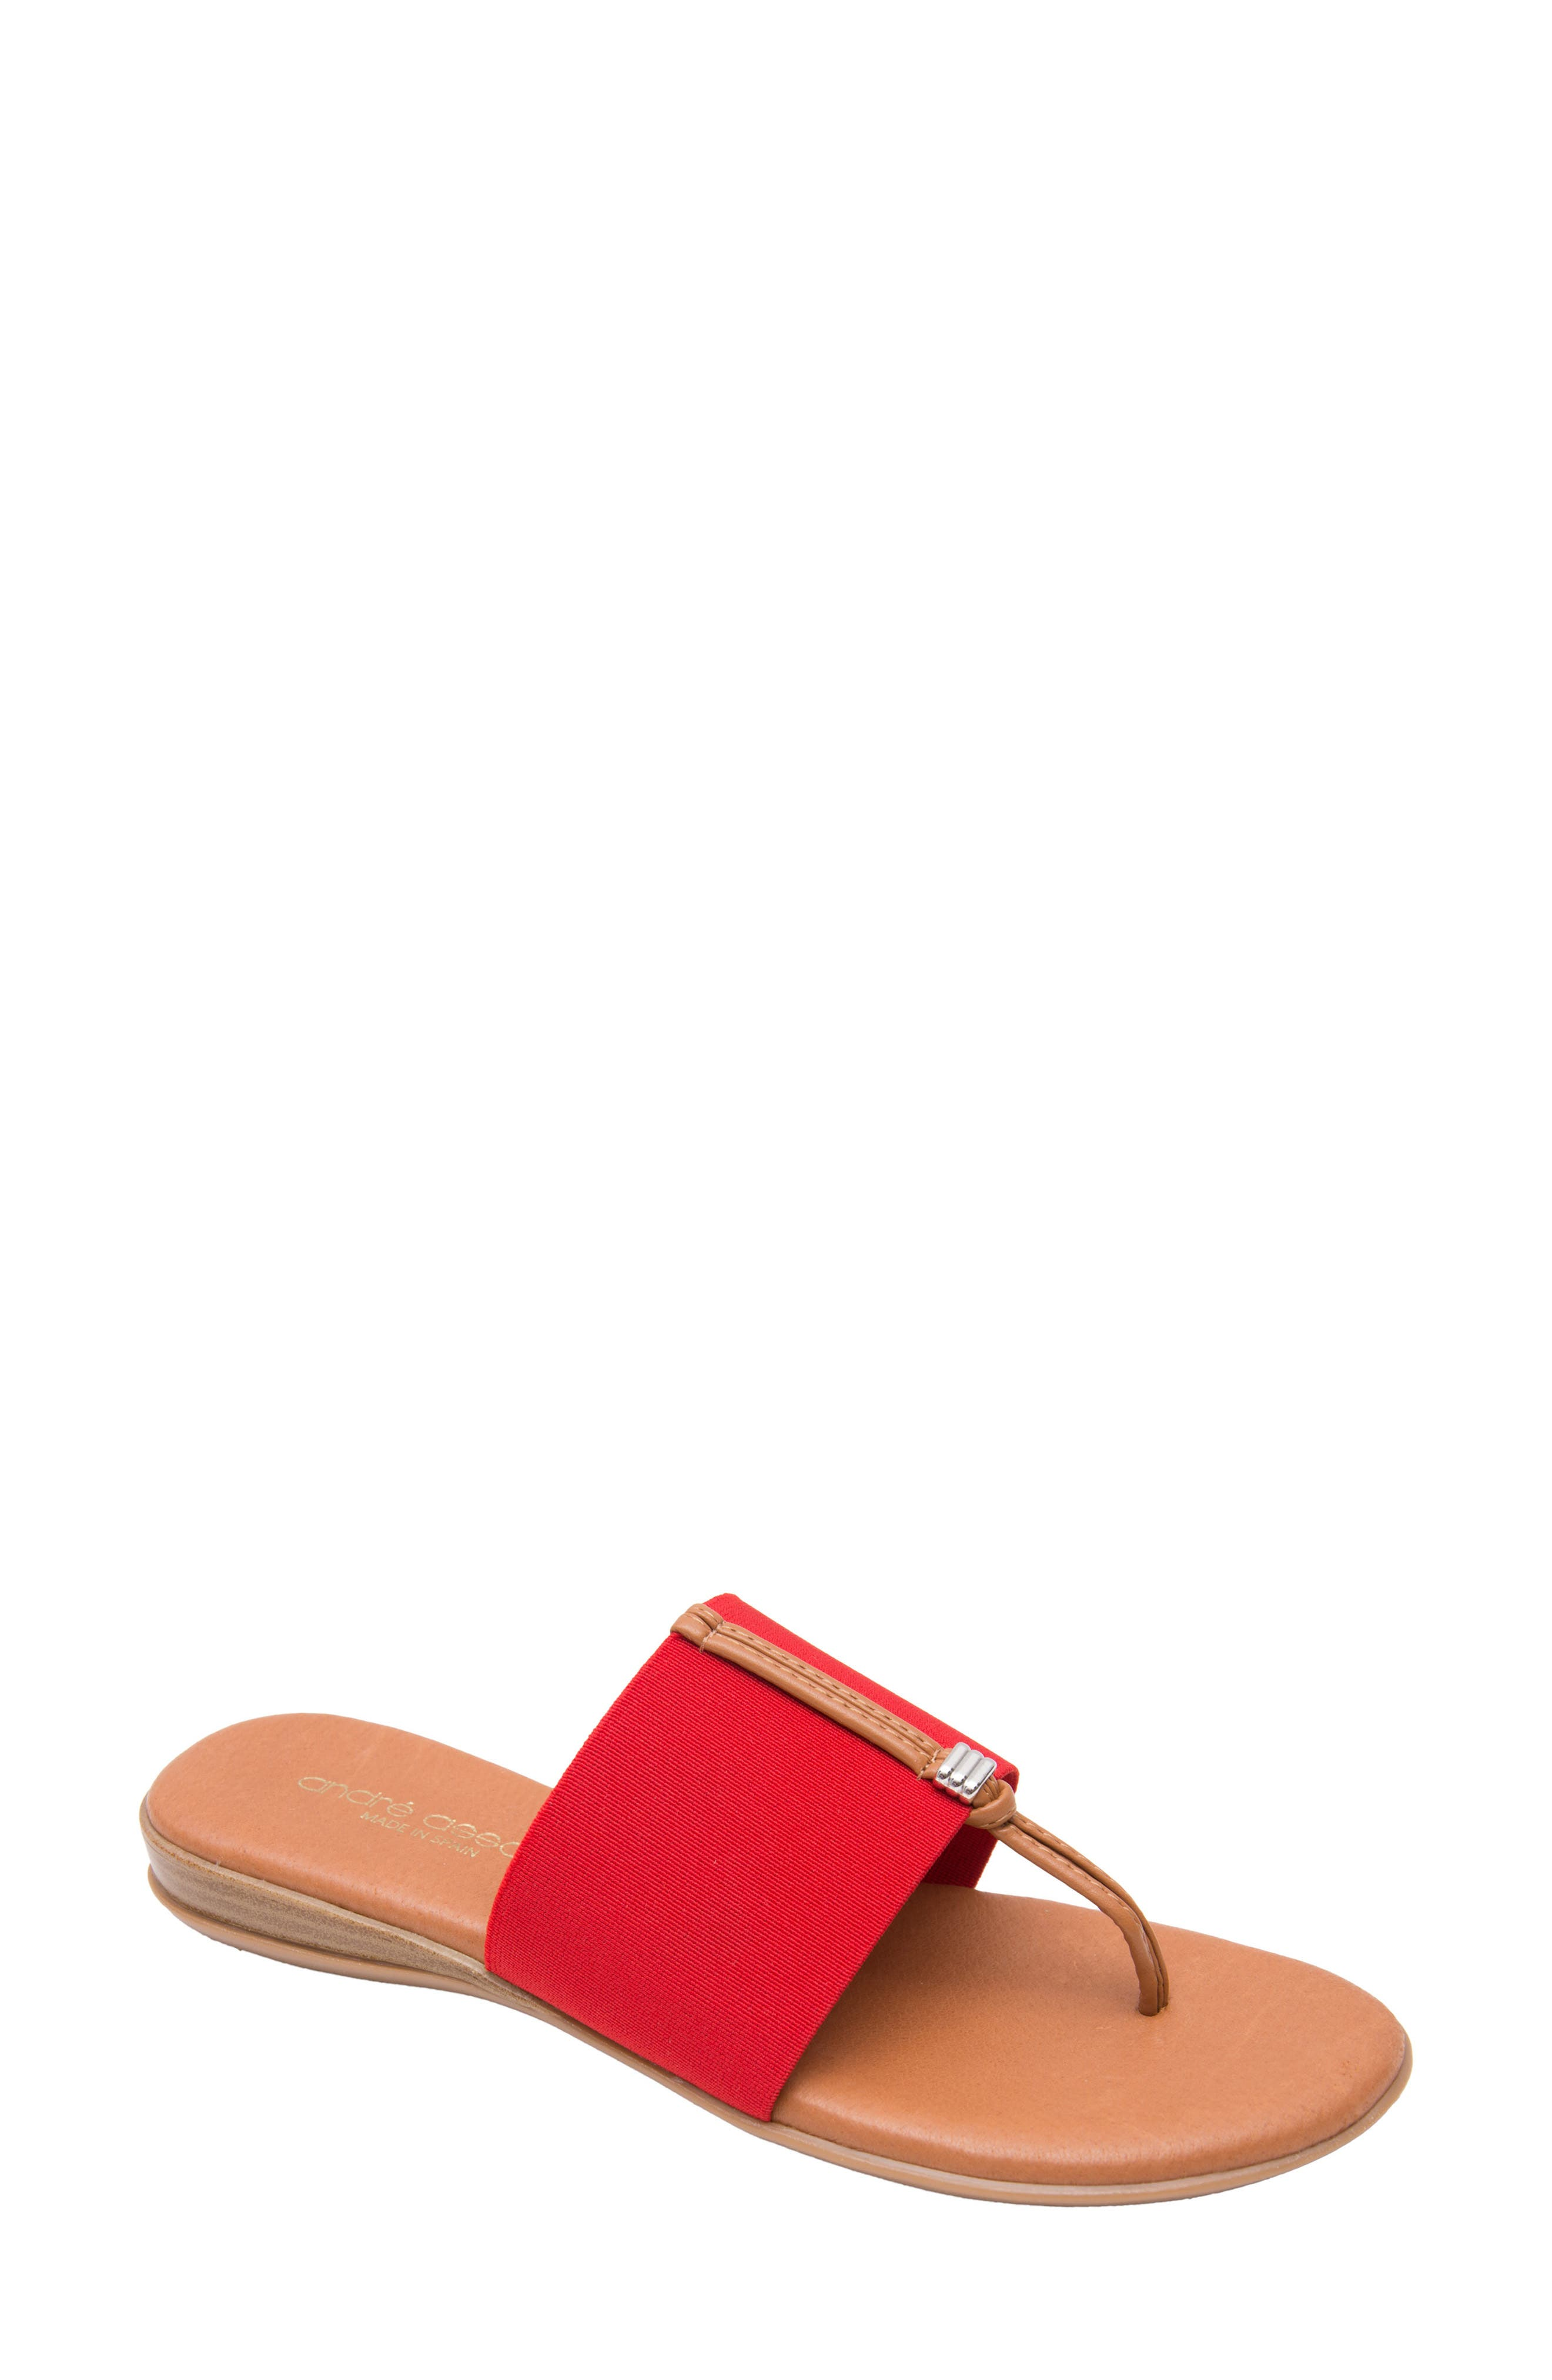 ANDRE ASSOUS Nice Sandal in Red Fabric